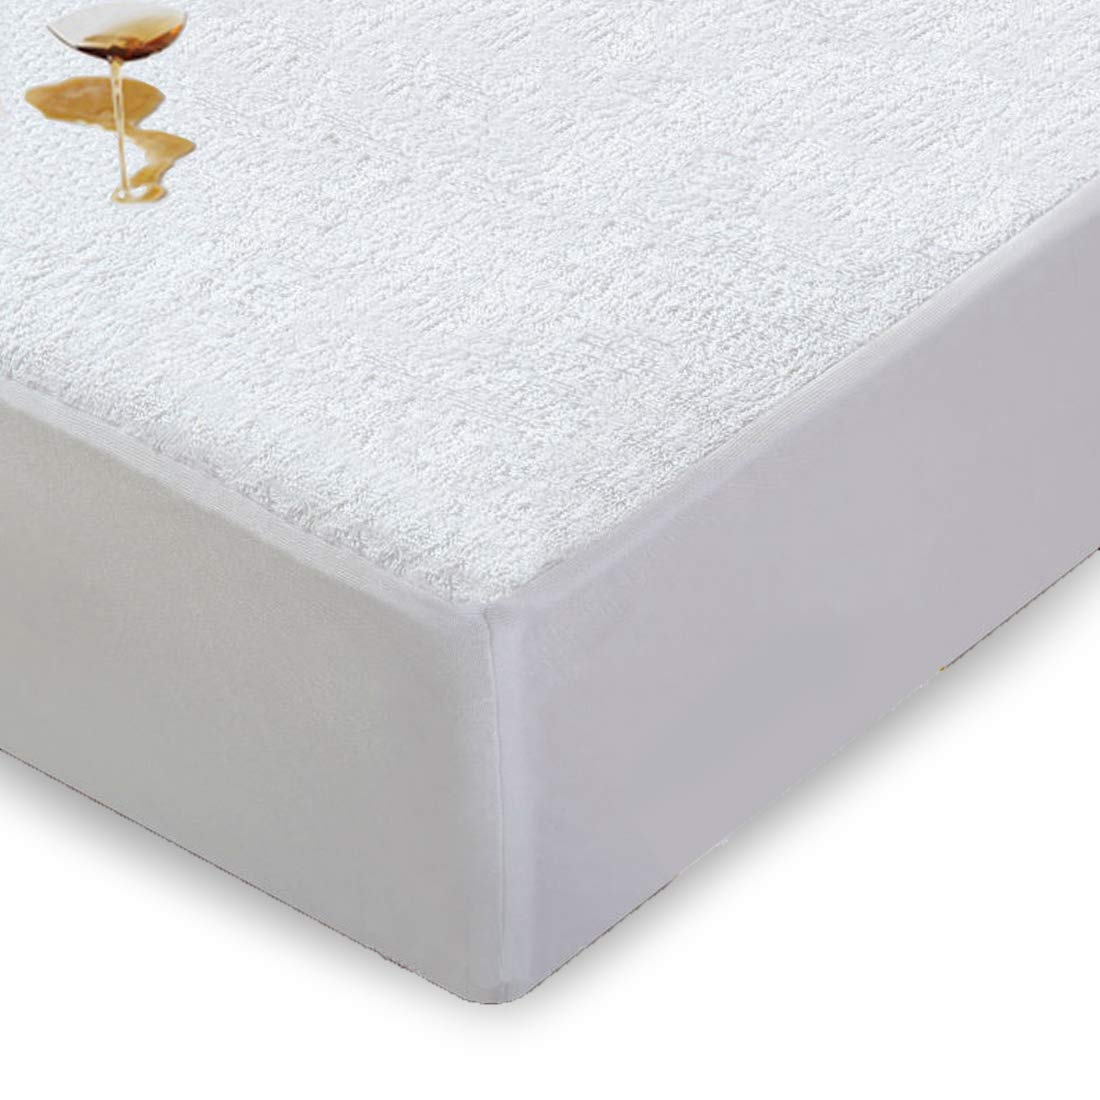 Emonia Twin XL Size Mattress Protector - Waterproof Fitted Mattress Cover with Deep Pocket (8-21), Hypoallergenic Breathable 100% Cotton - Vinyl,PVC and Phthalate Free Bed Bug Protection Voilets